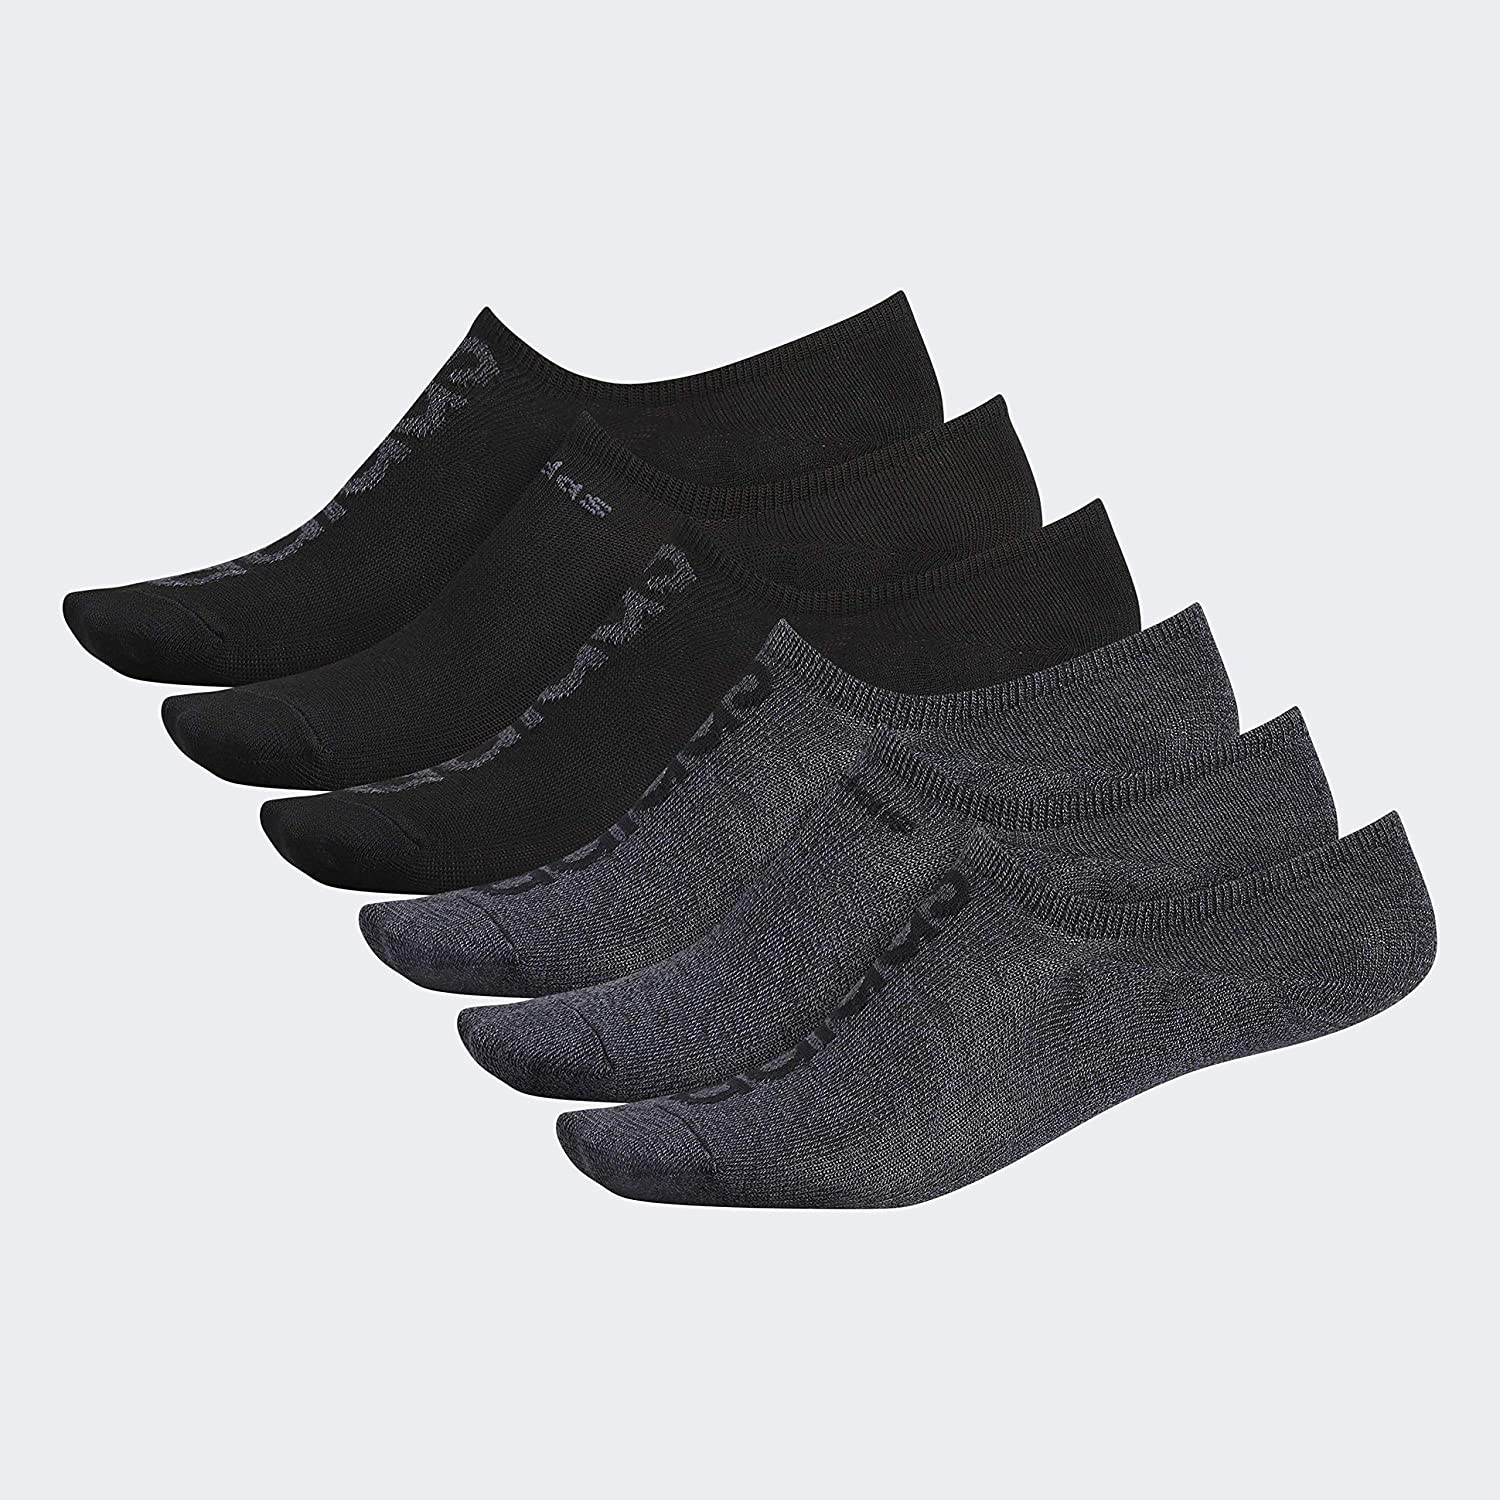 Six pack of Adidas Men's Superlite Super No-Show Socks in black and grey